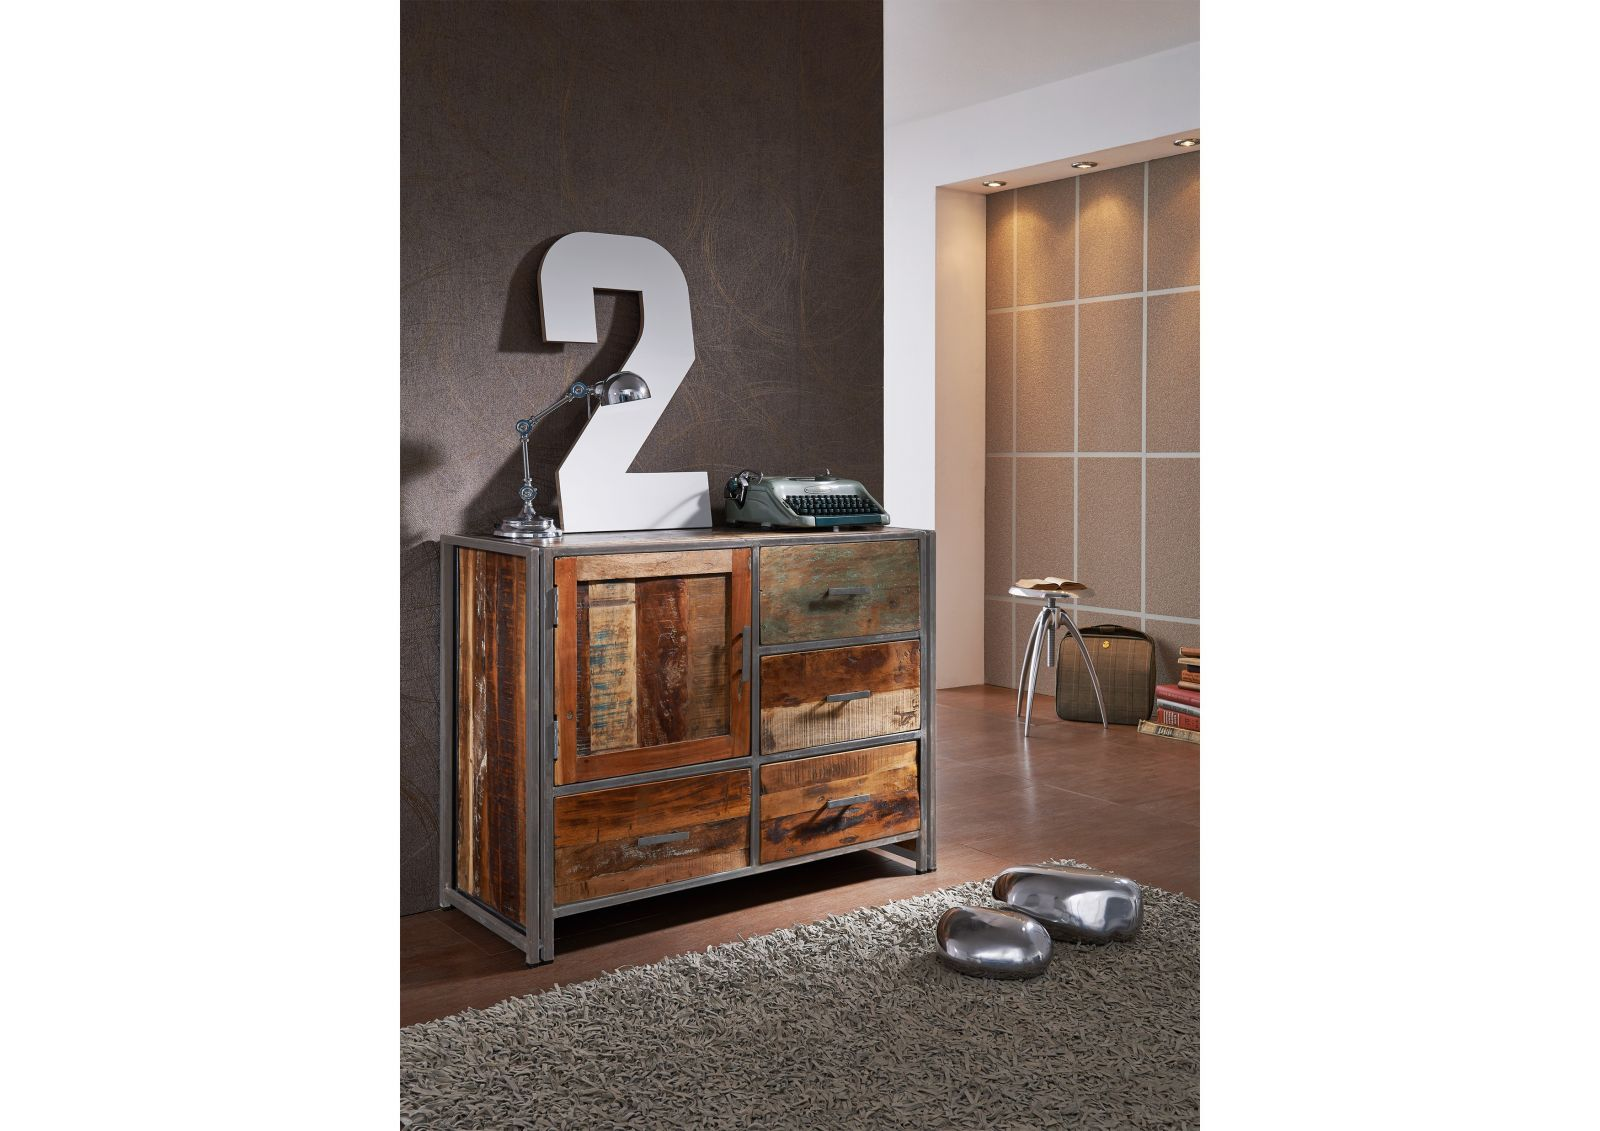 new york sideboard 10 indisches altholz lack metall. Black Bedroom Furniture Sets. Home Design Ideas